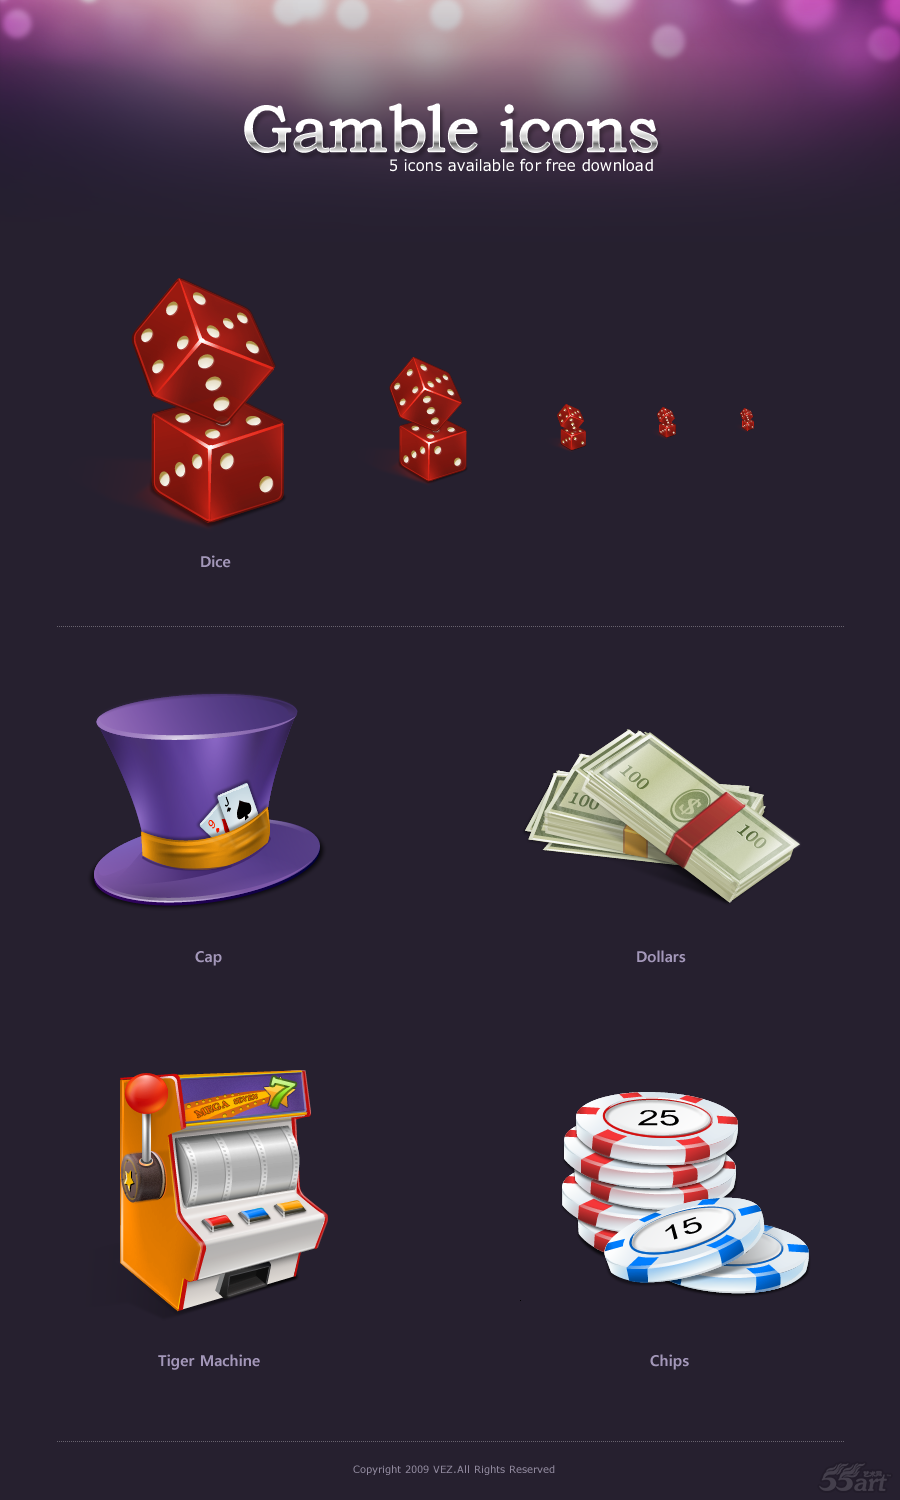 Gamble_icons_by_vezok.png